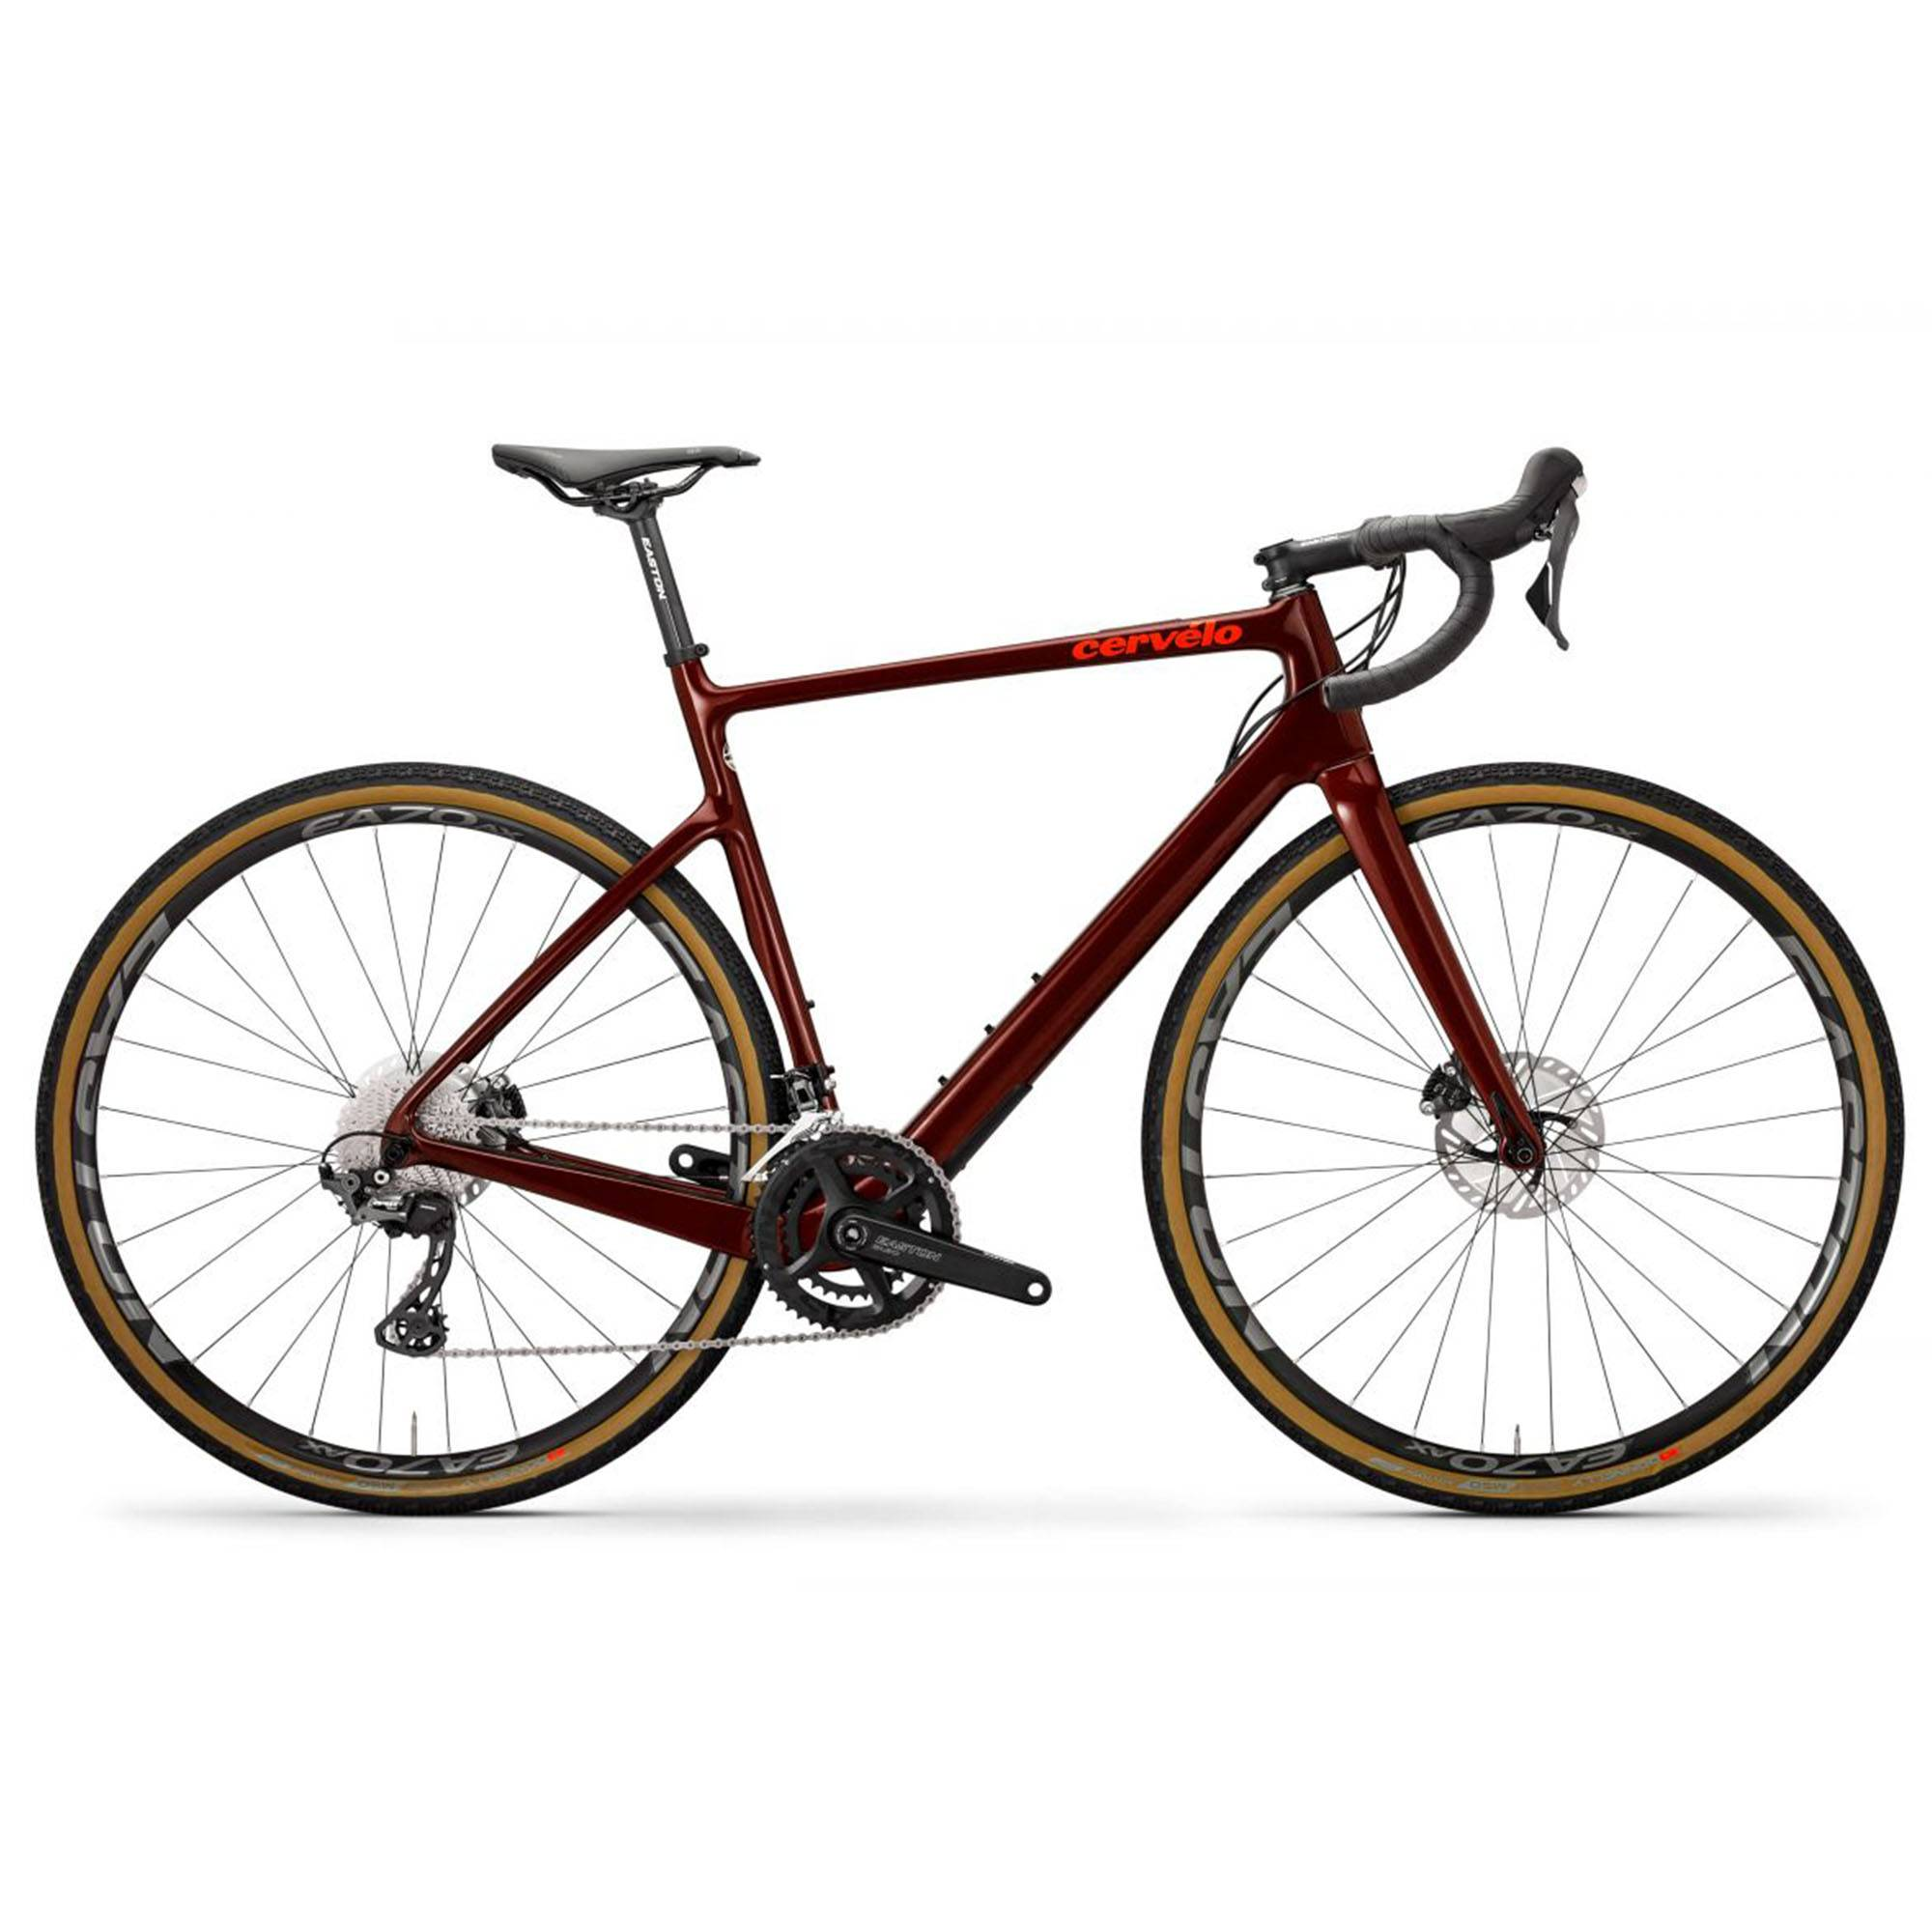 Cervelo Men's Aspero GRX Gravel Bike '20  - Burgundy/Dark Orange - Size: 58